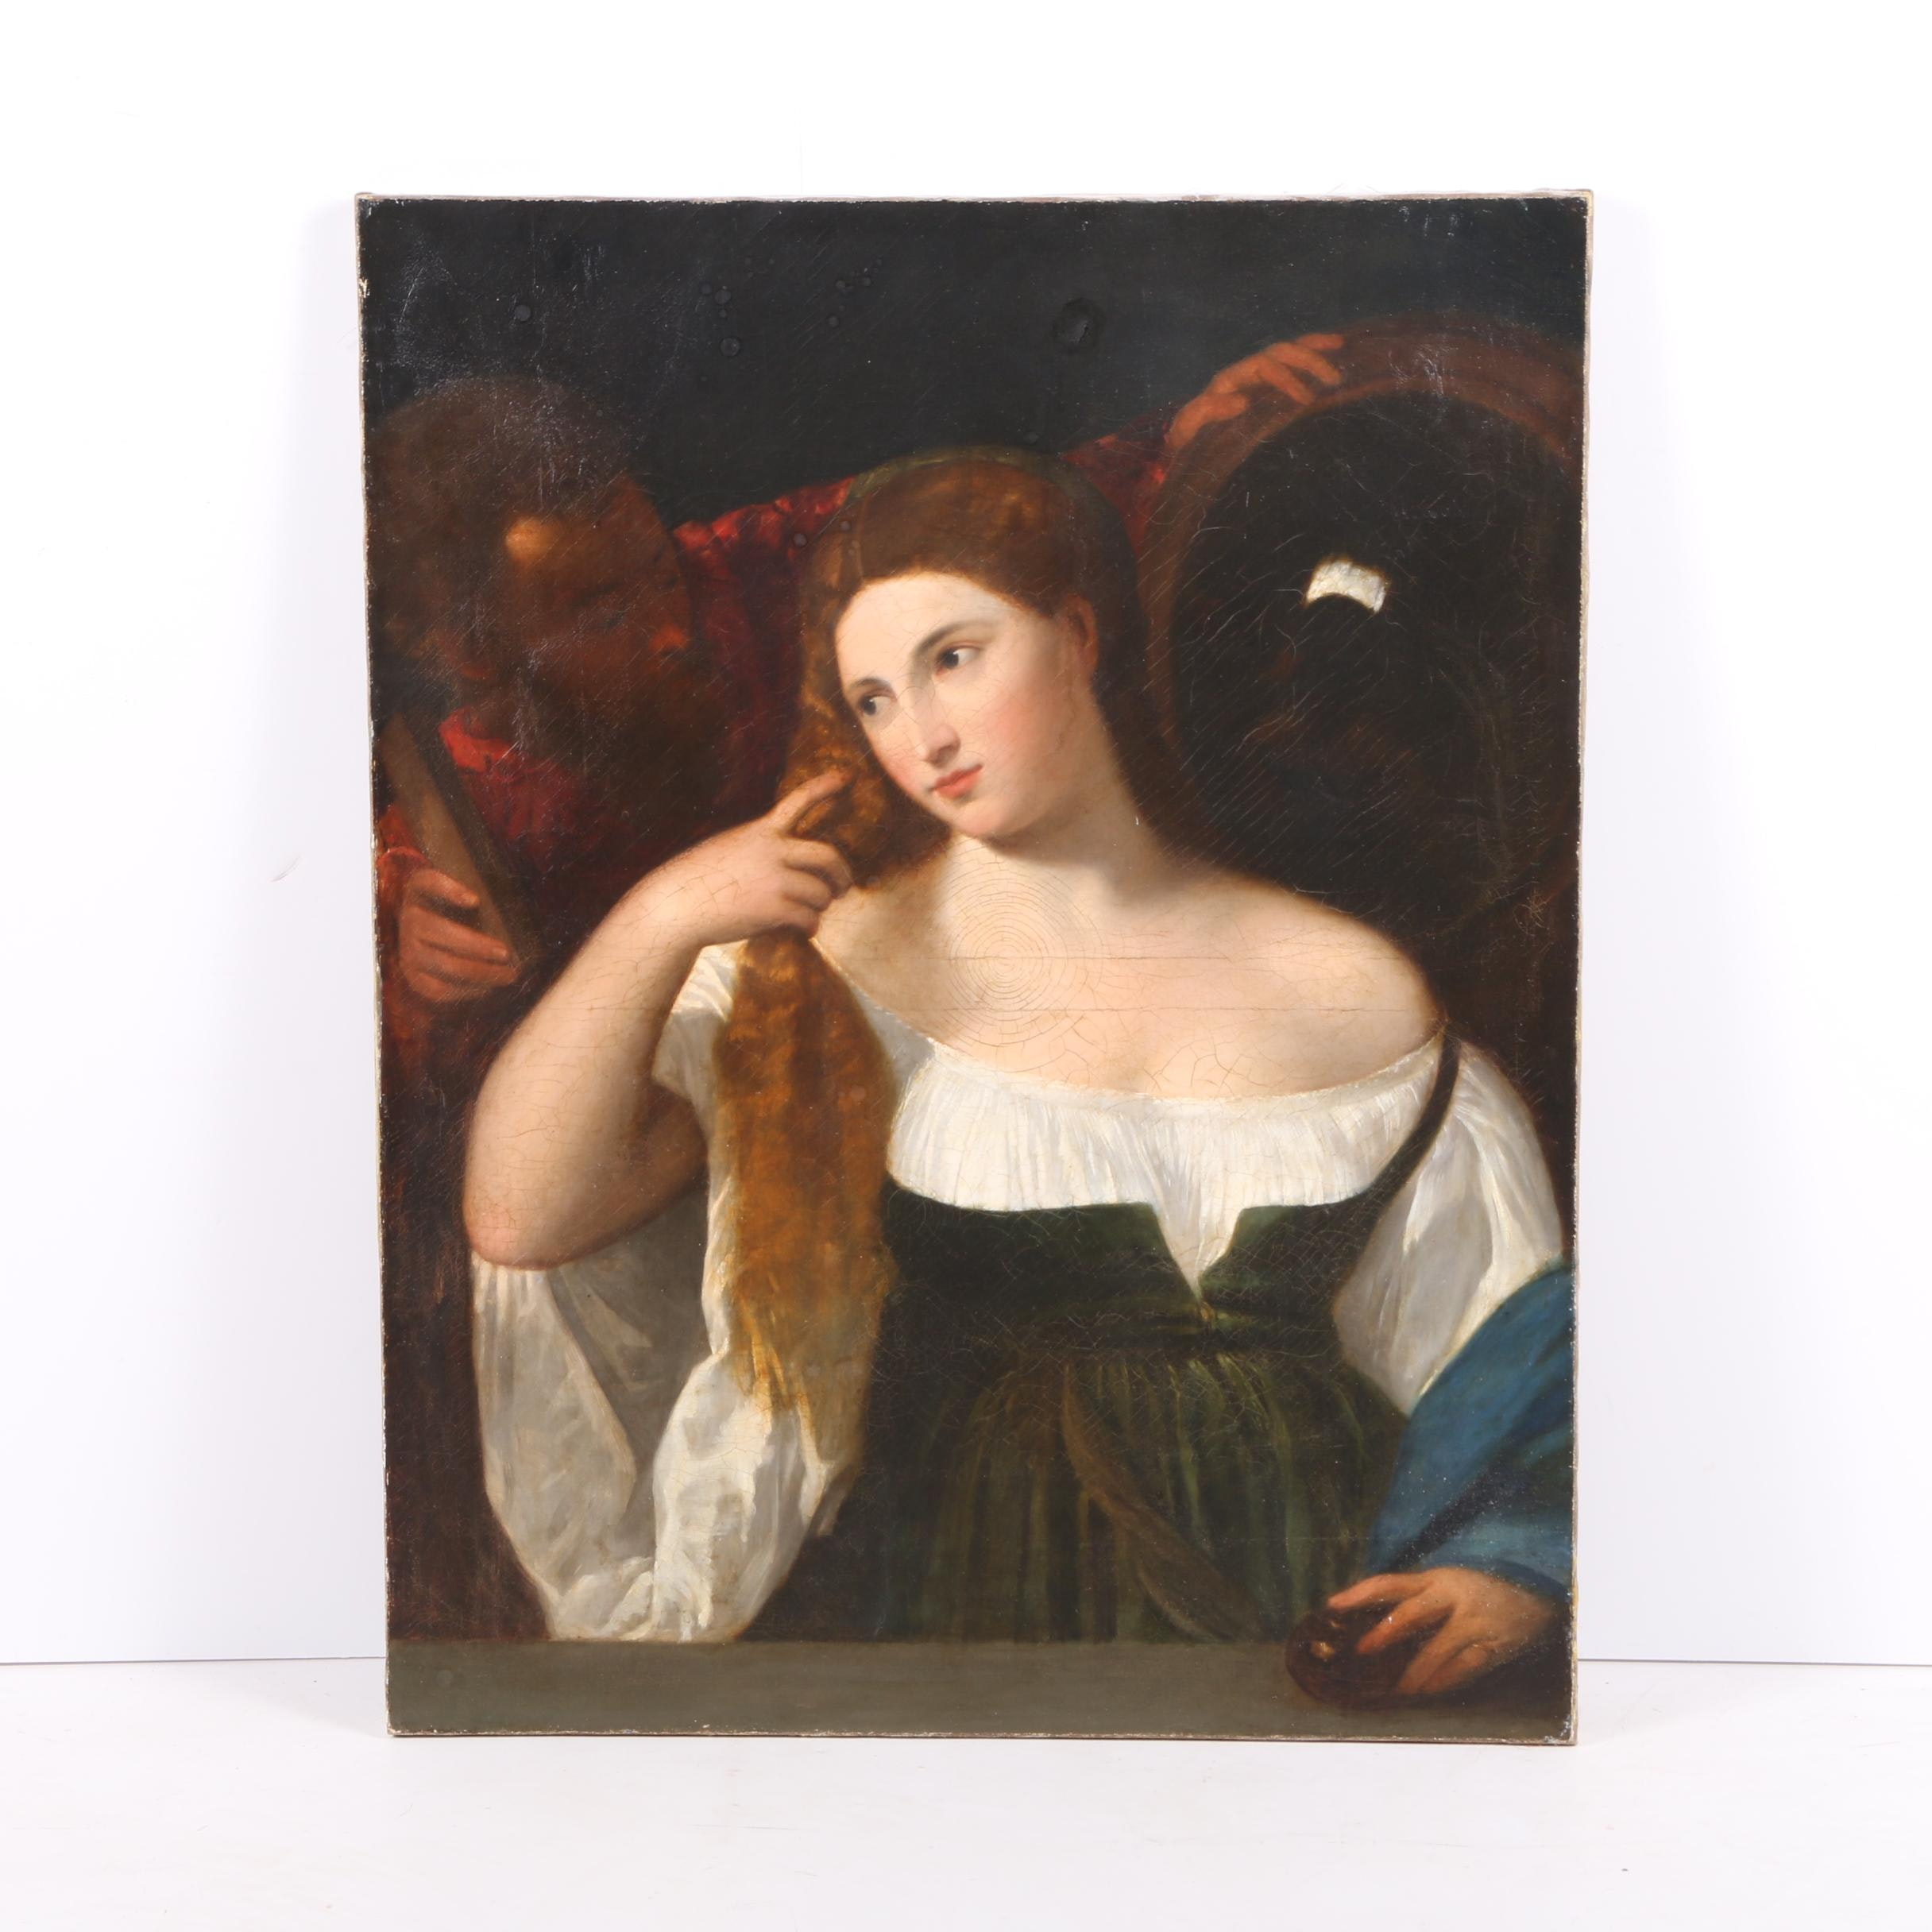 "Facsimile Oil Painting on Canvas After Titian's ""Woman with a Mirror"""